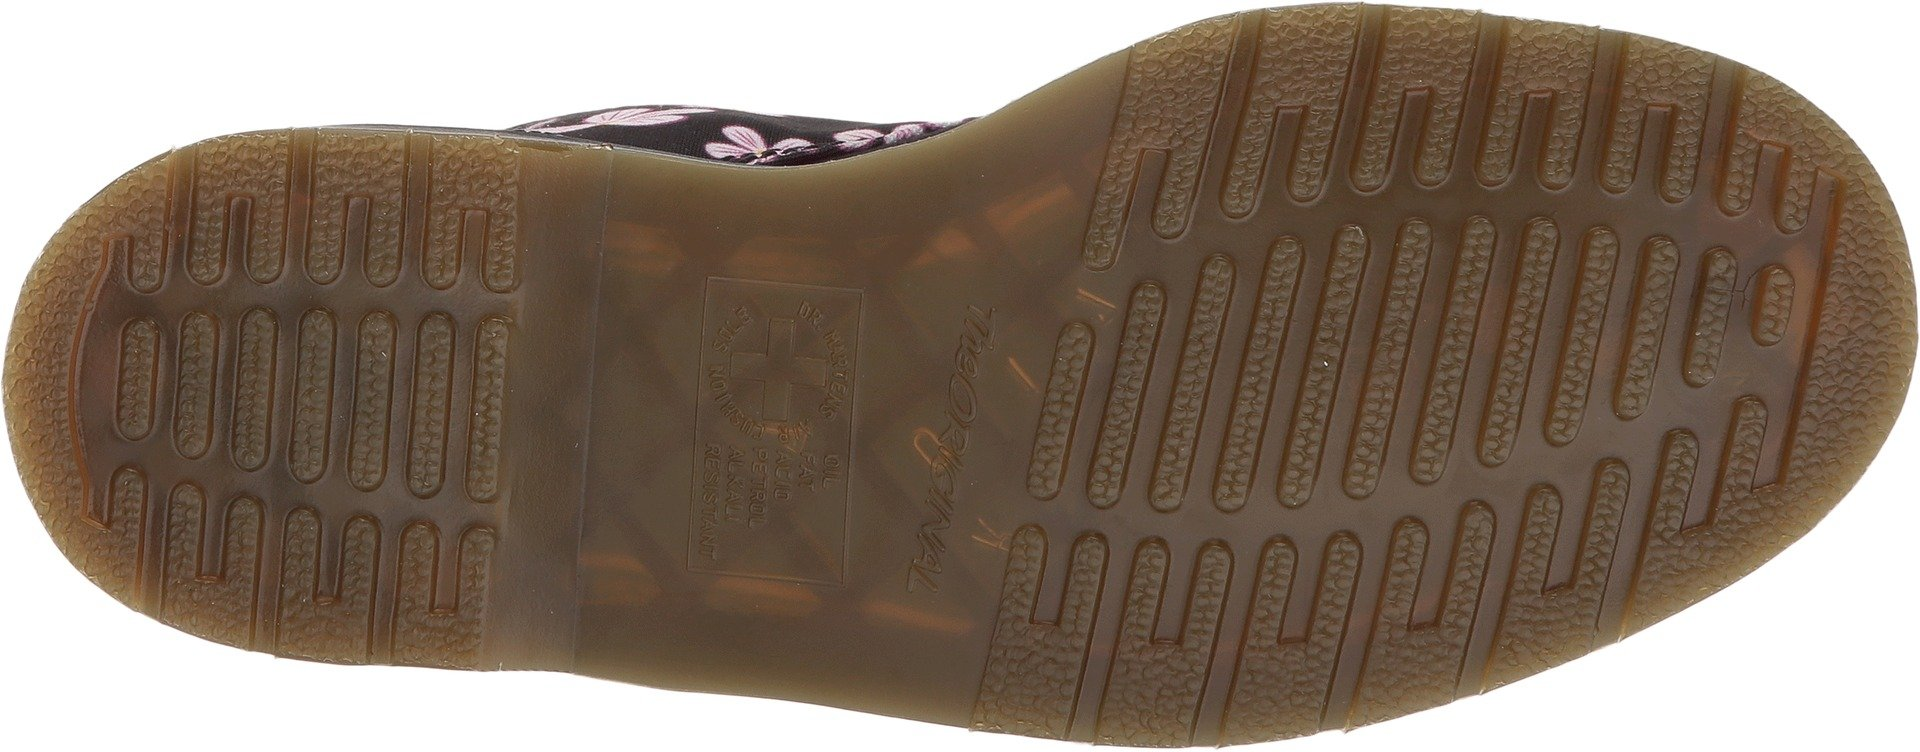 Dr. Martens Women's Page,Black Meadow Flowers,7 M UK (9 US) by Dr. Martens (Image #3)